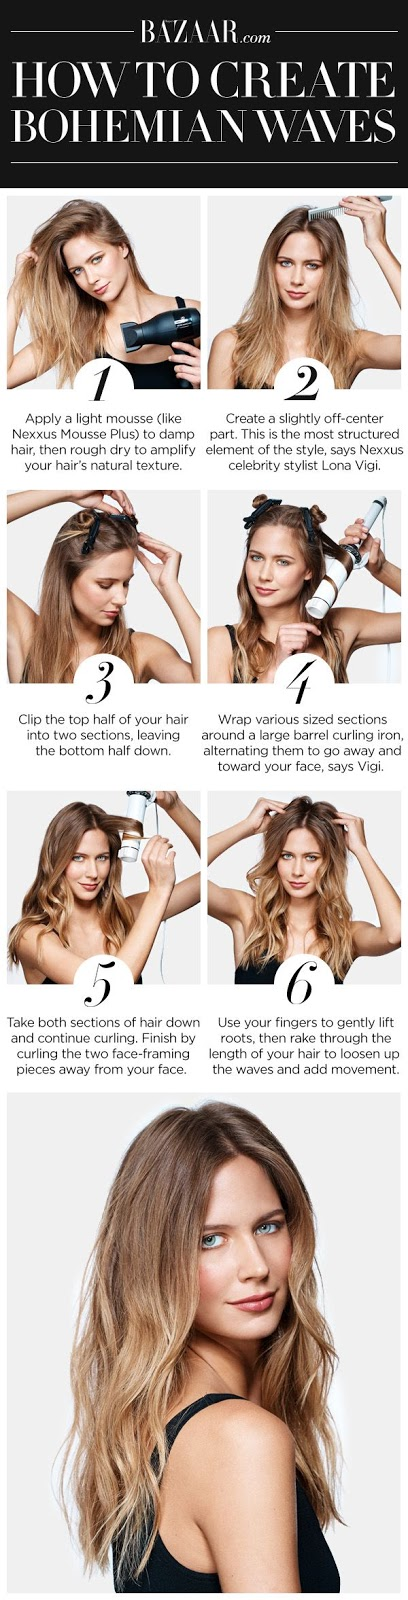 How to Create Bohemian Waves